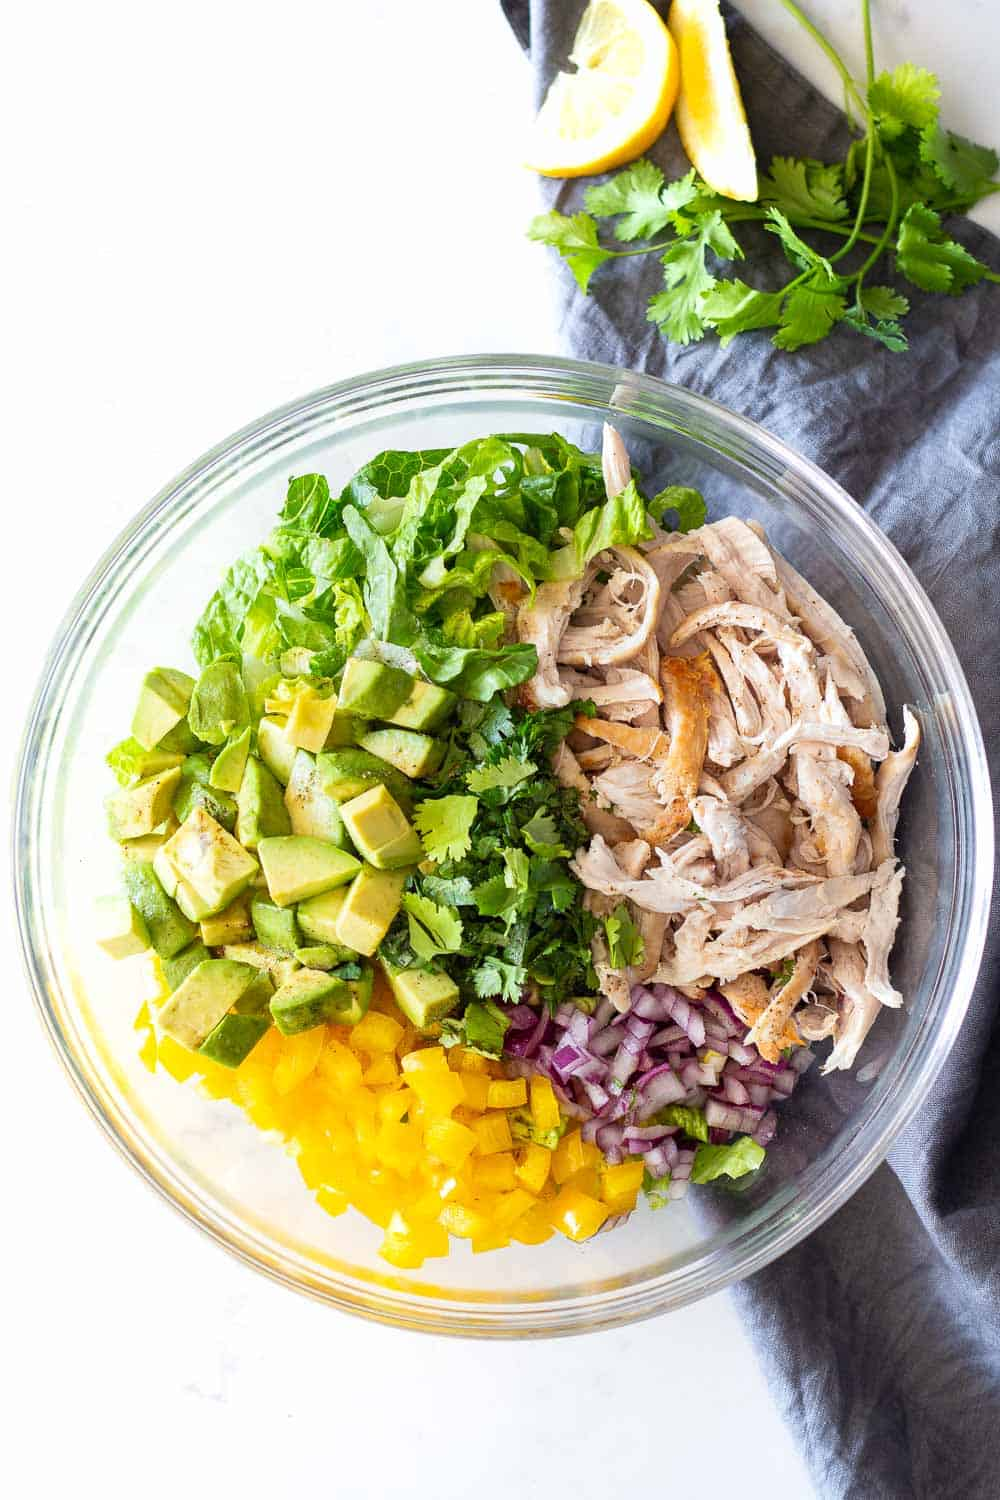 Avocado Chicken Salad in a glass bowl.